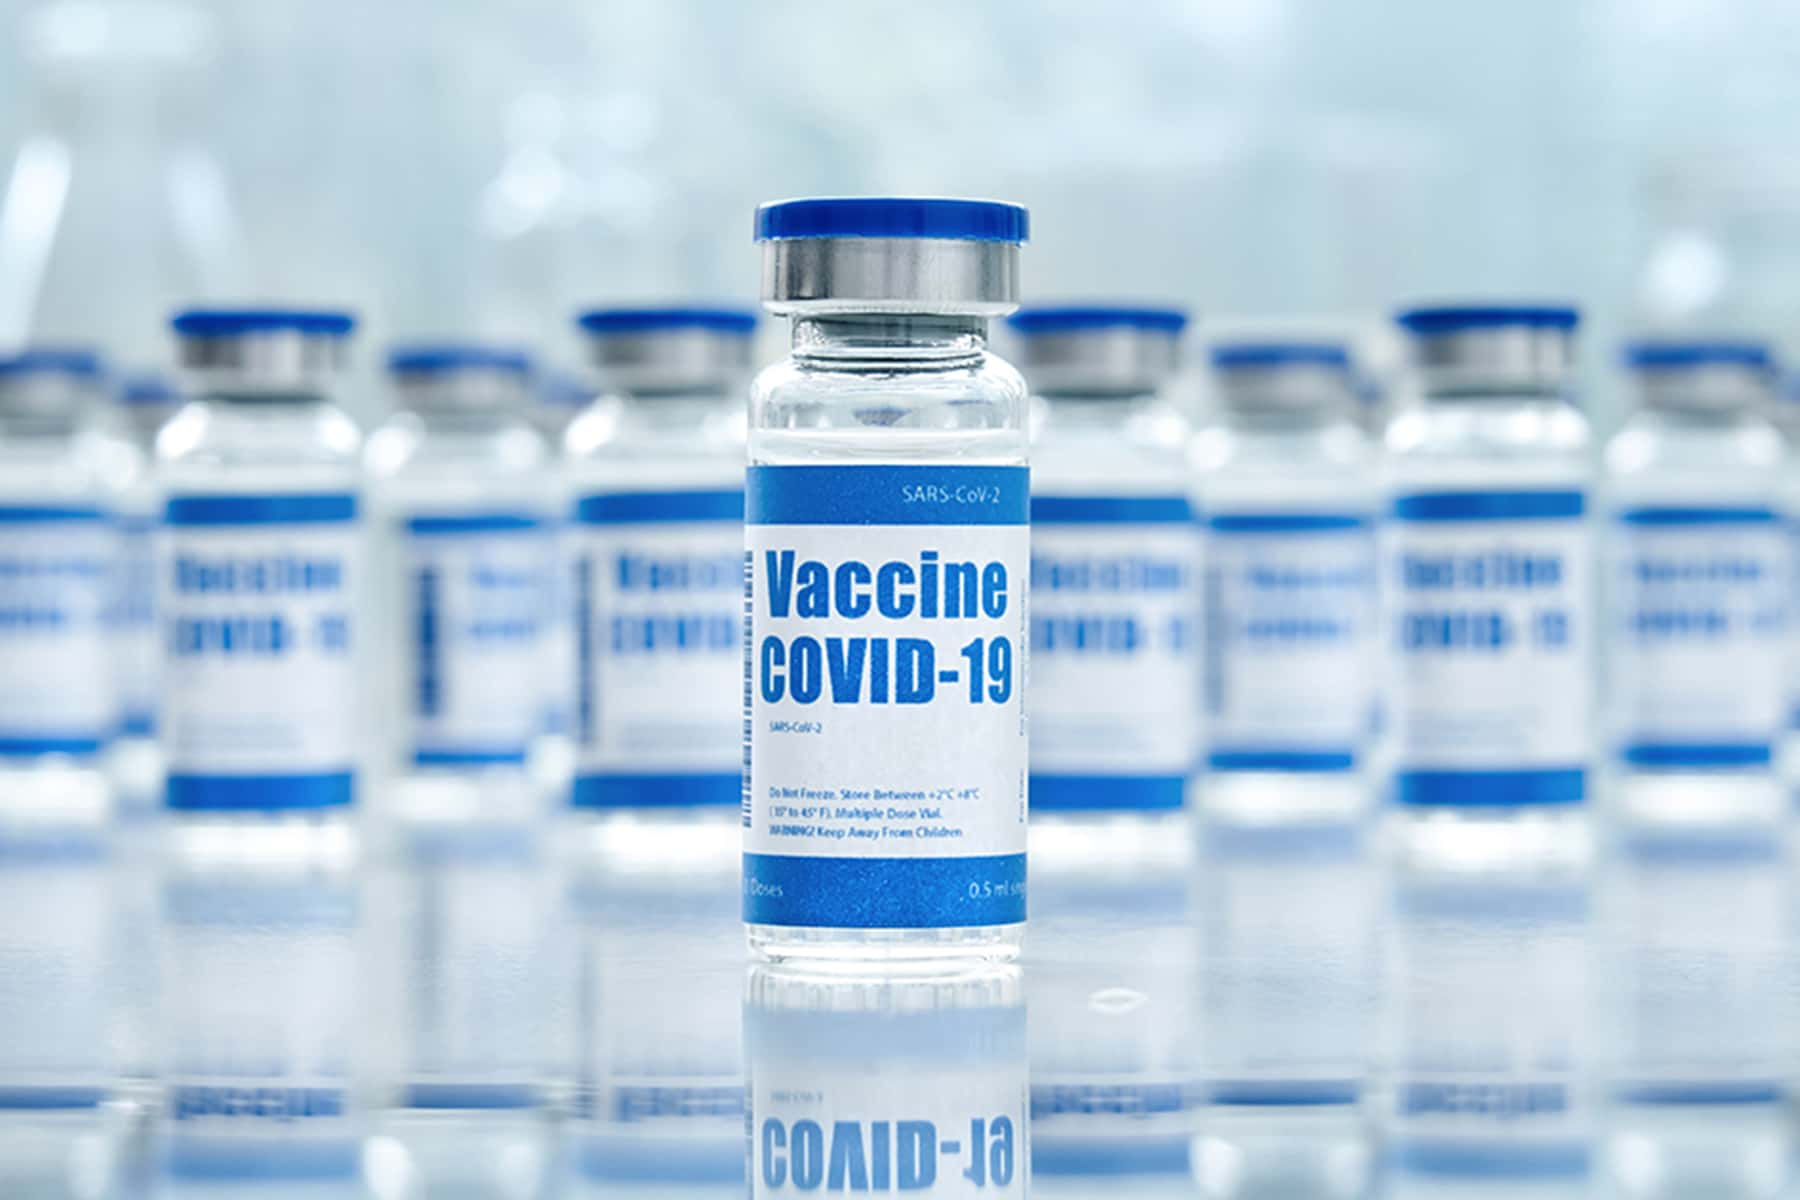 123120_vaccinedelivery_02